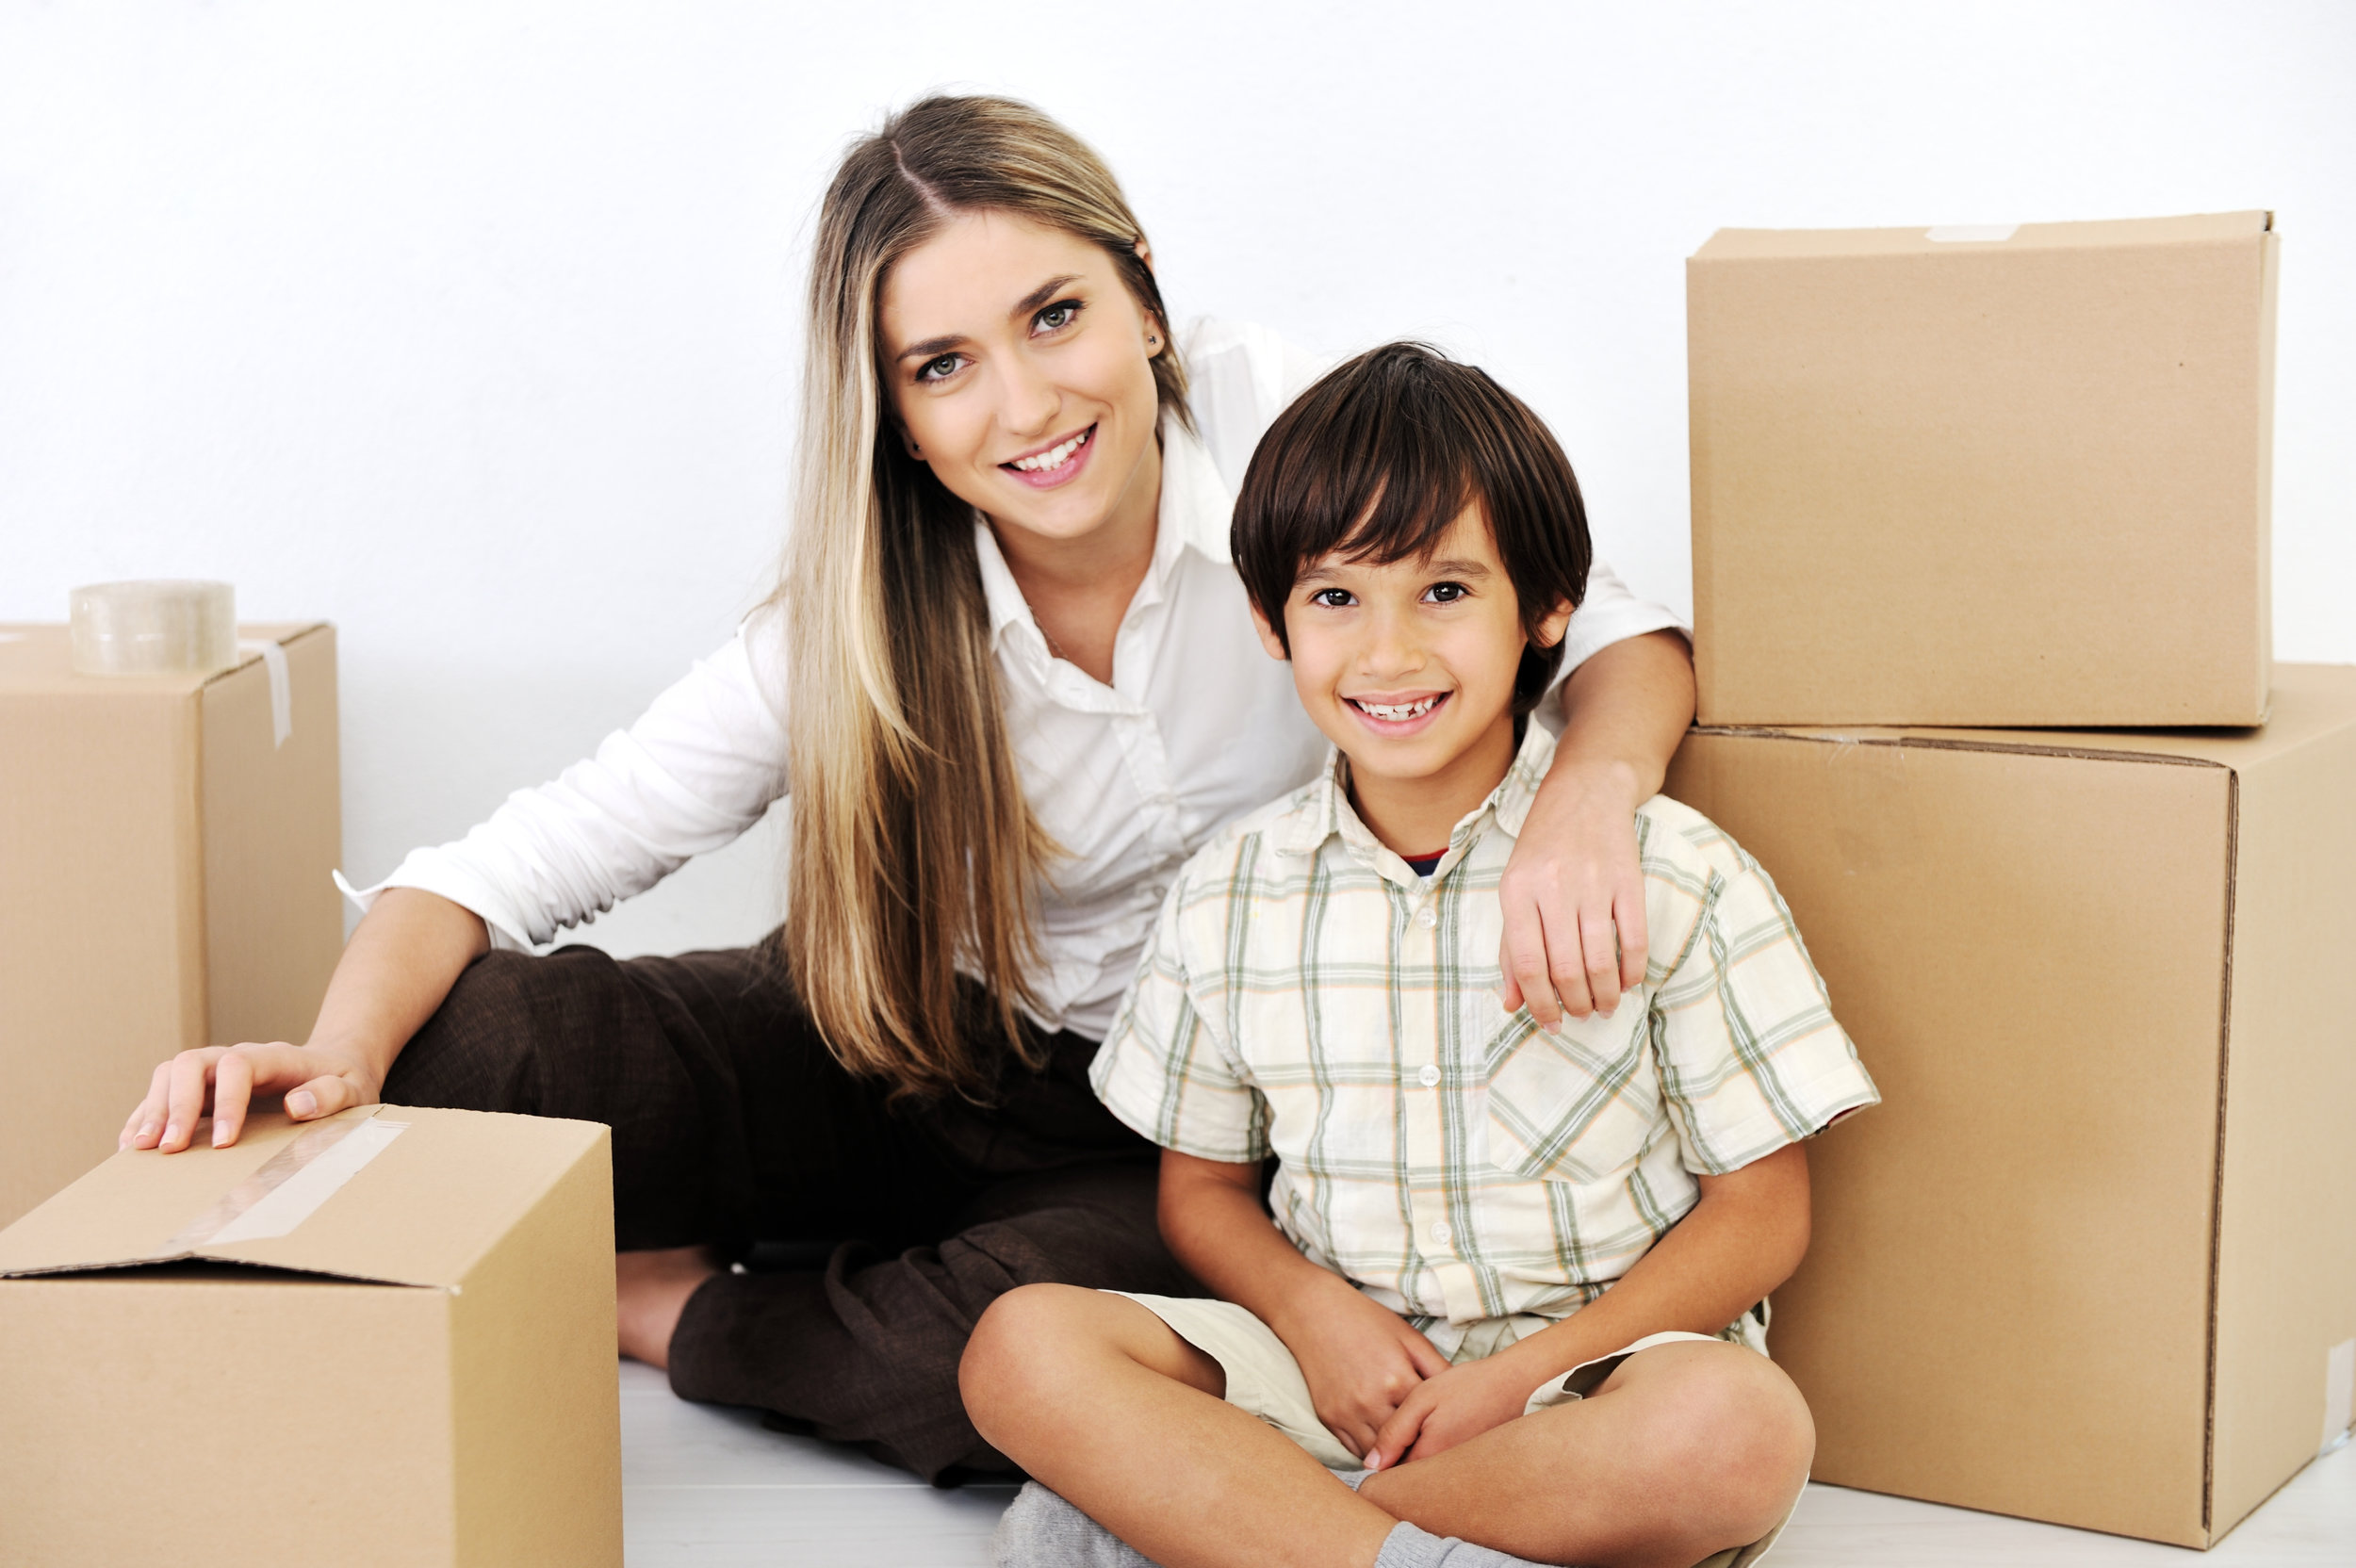 beautiful-smiling-woman-and-little-boy-openig-cardboard-box_SKWg0h_Trs.jpg